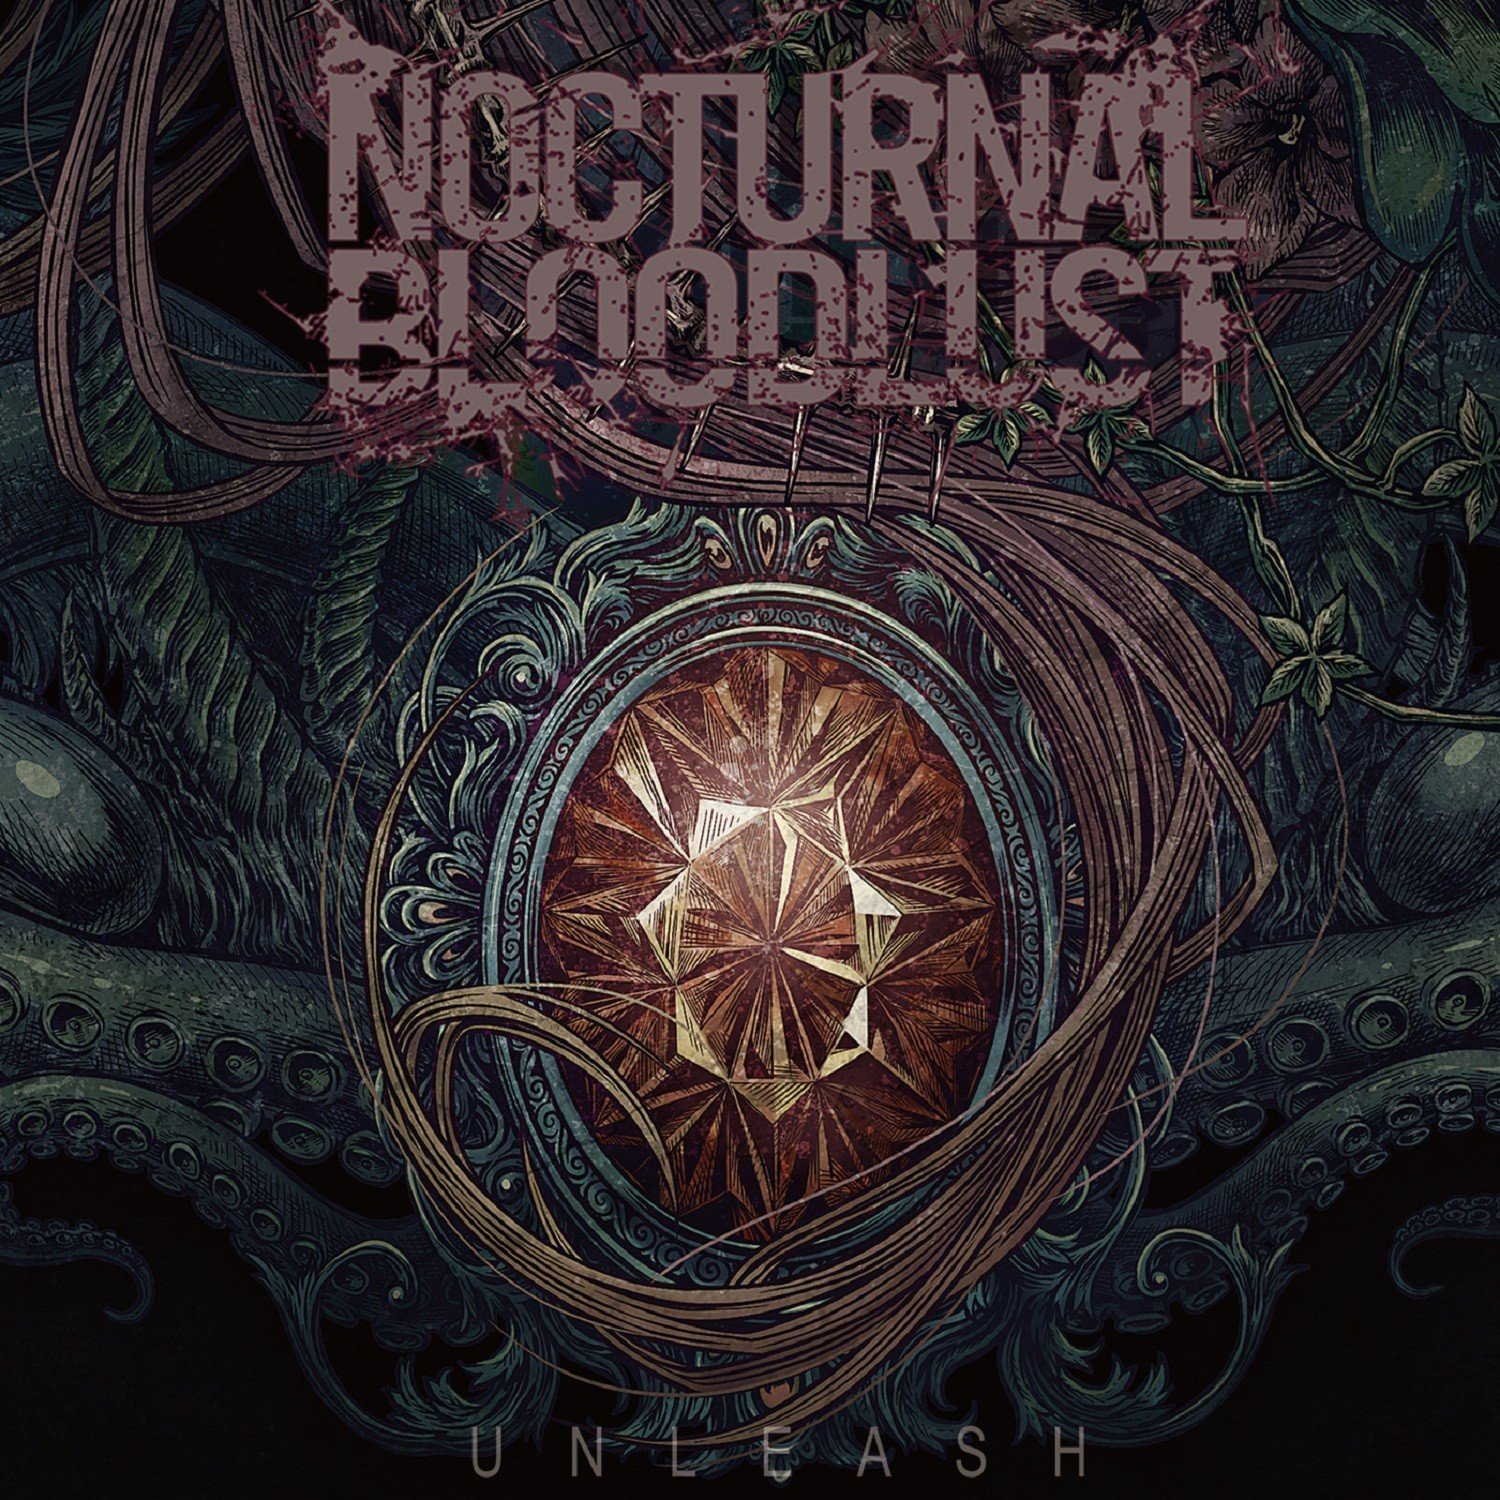 Nocturnal Bloodlust – UNLEASH [FLAC + MP3 320 / CD] [2019.07.24]